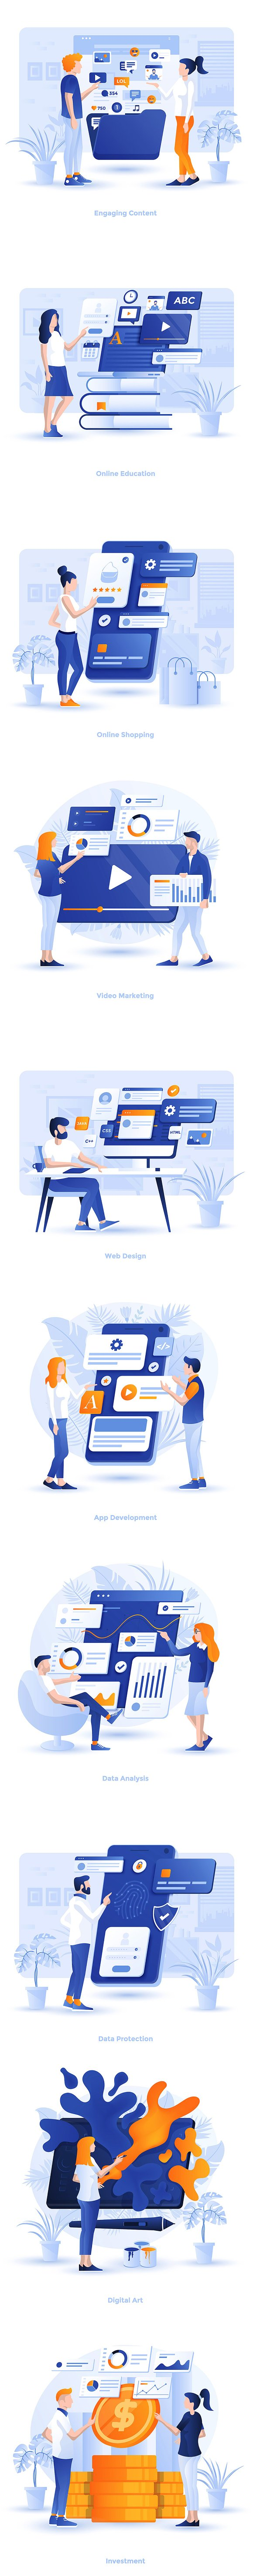 Modern Flat design Business concepts in Illustrations - product preview 11